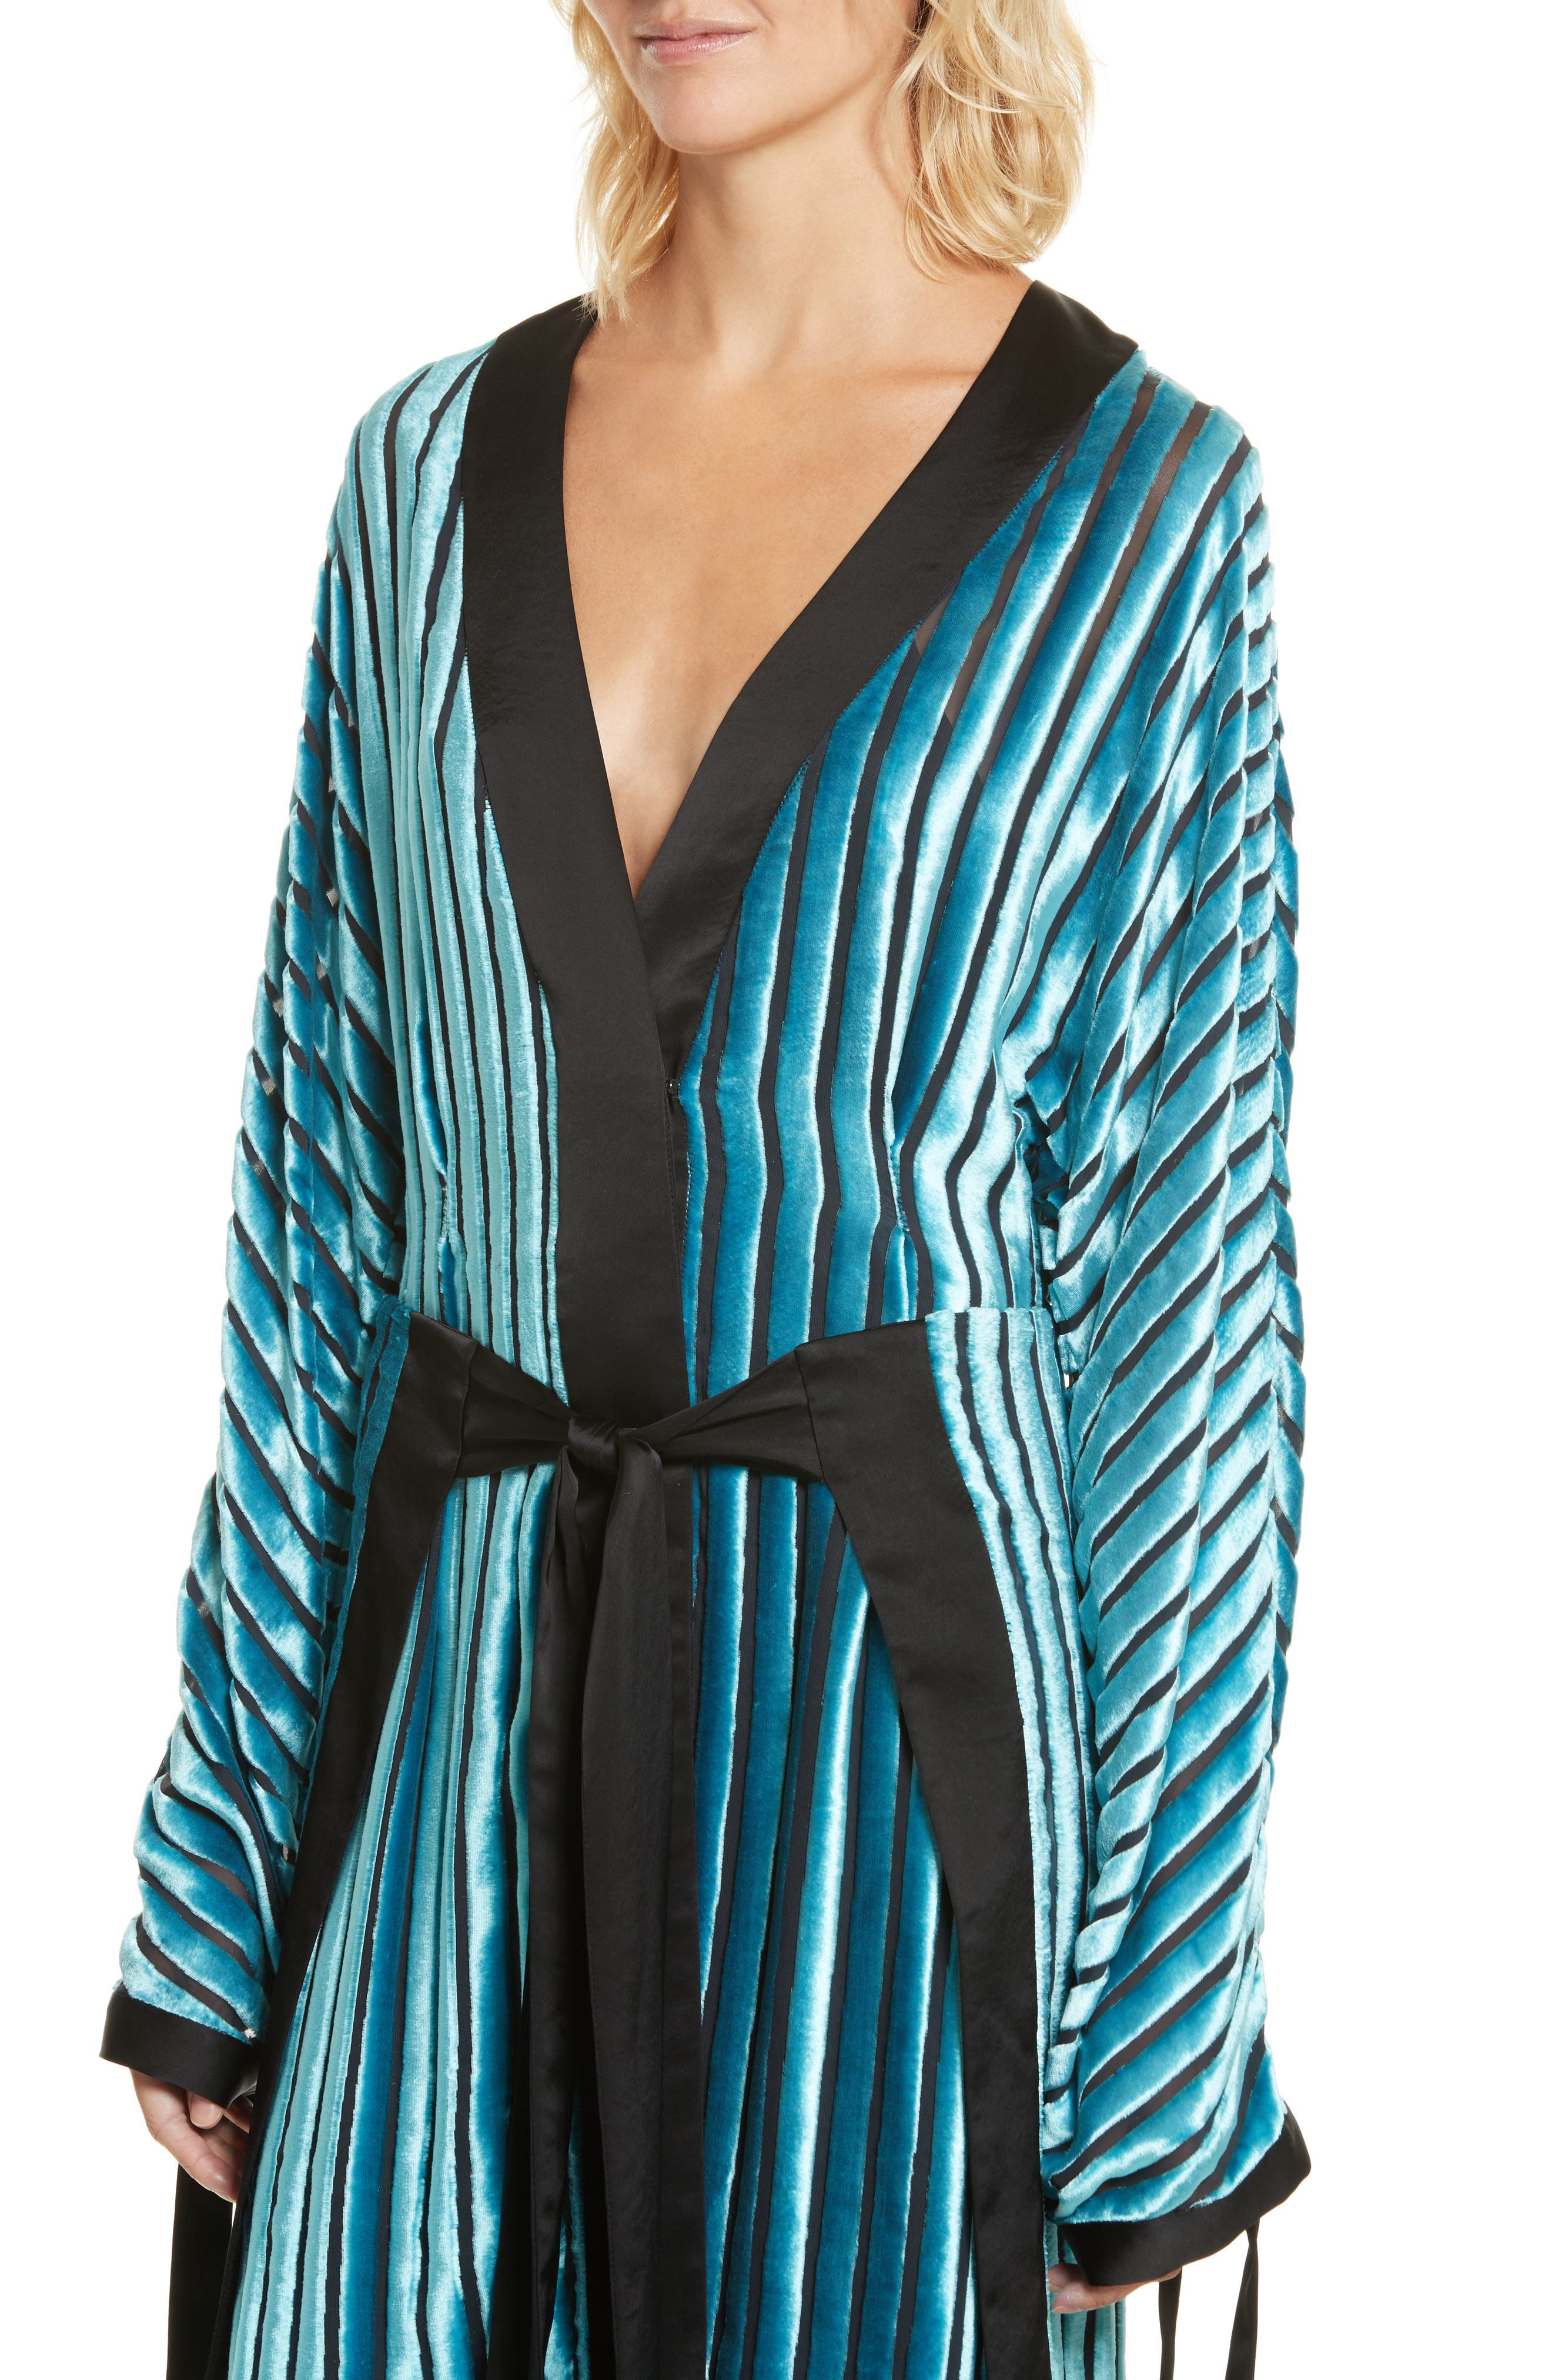 Velvet Burnout Kimono Dress,                             Alternate thumbnail 4, color,                             Black/ Marine